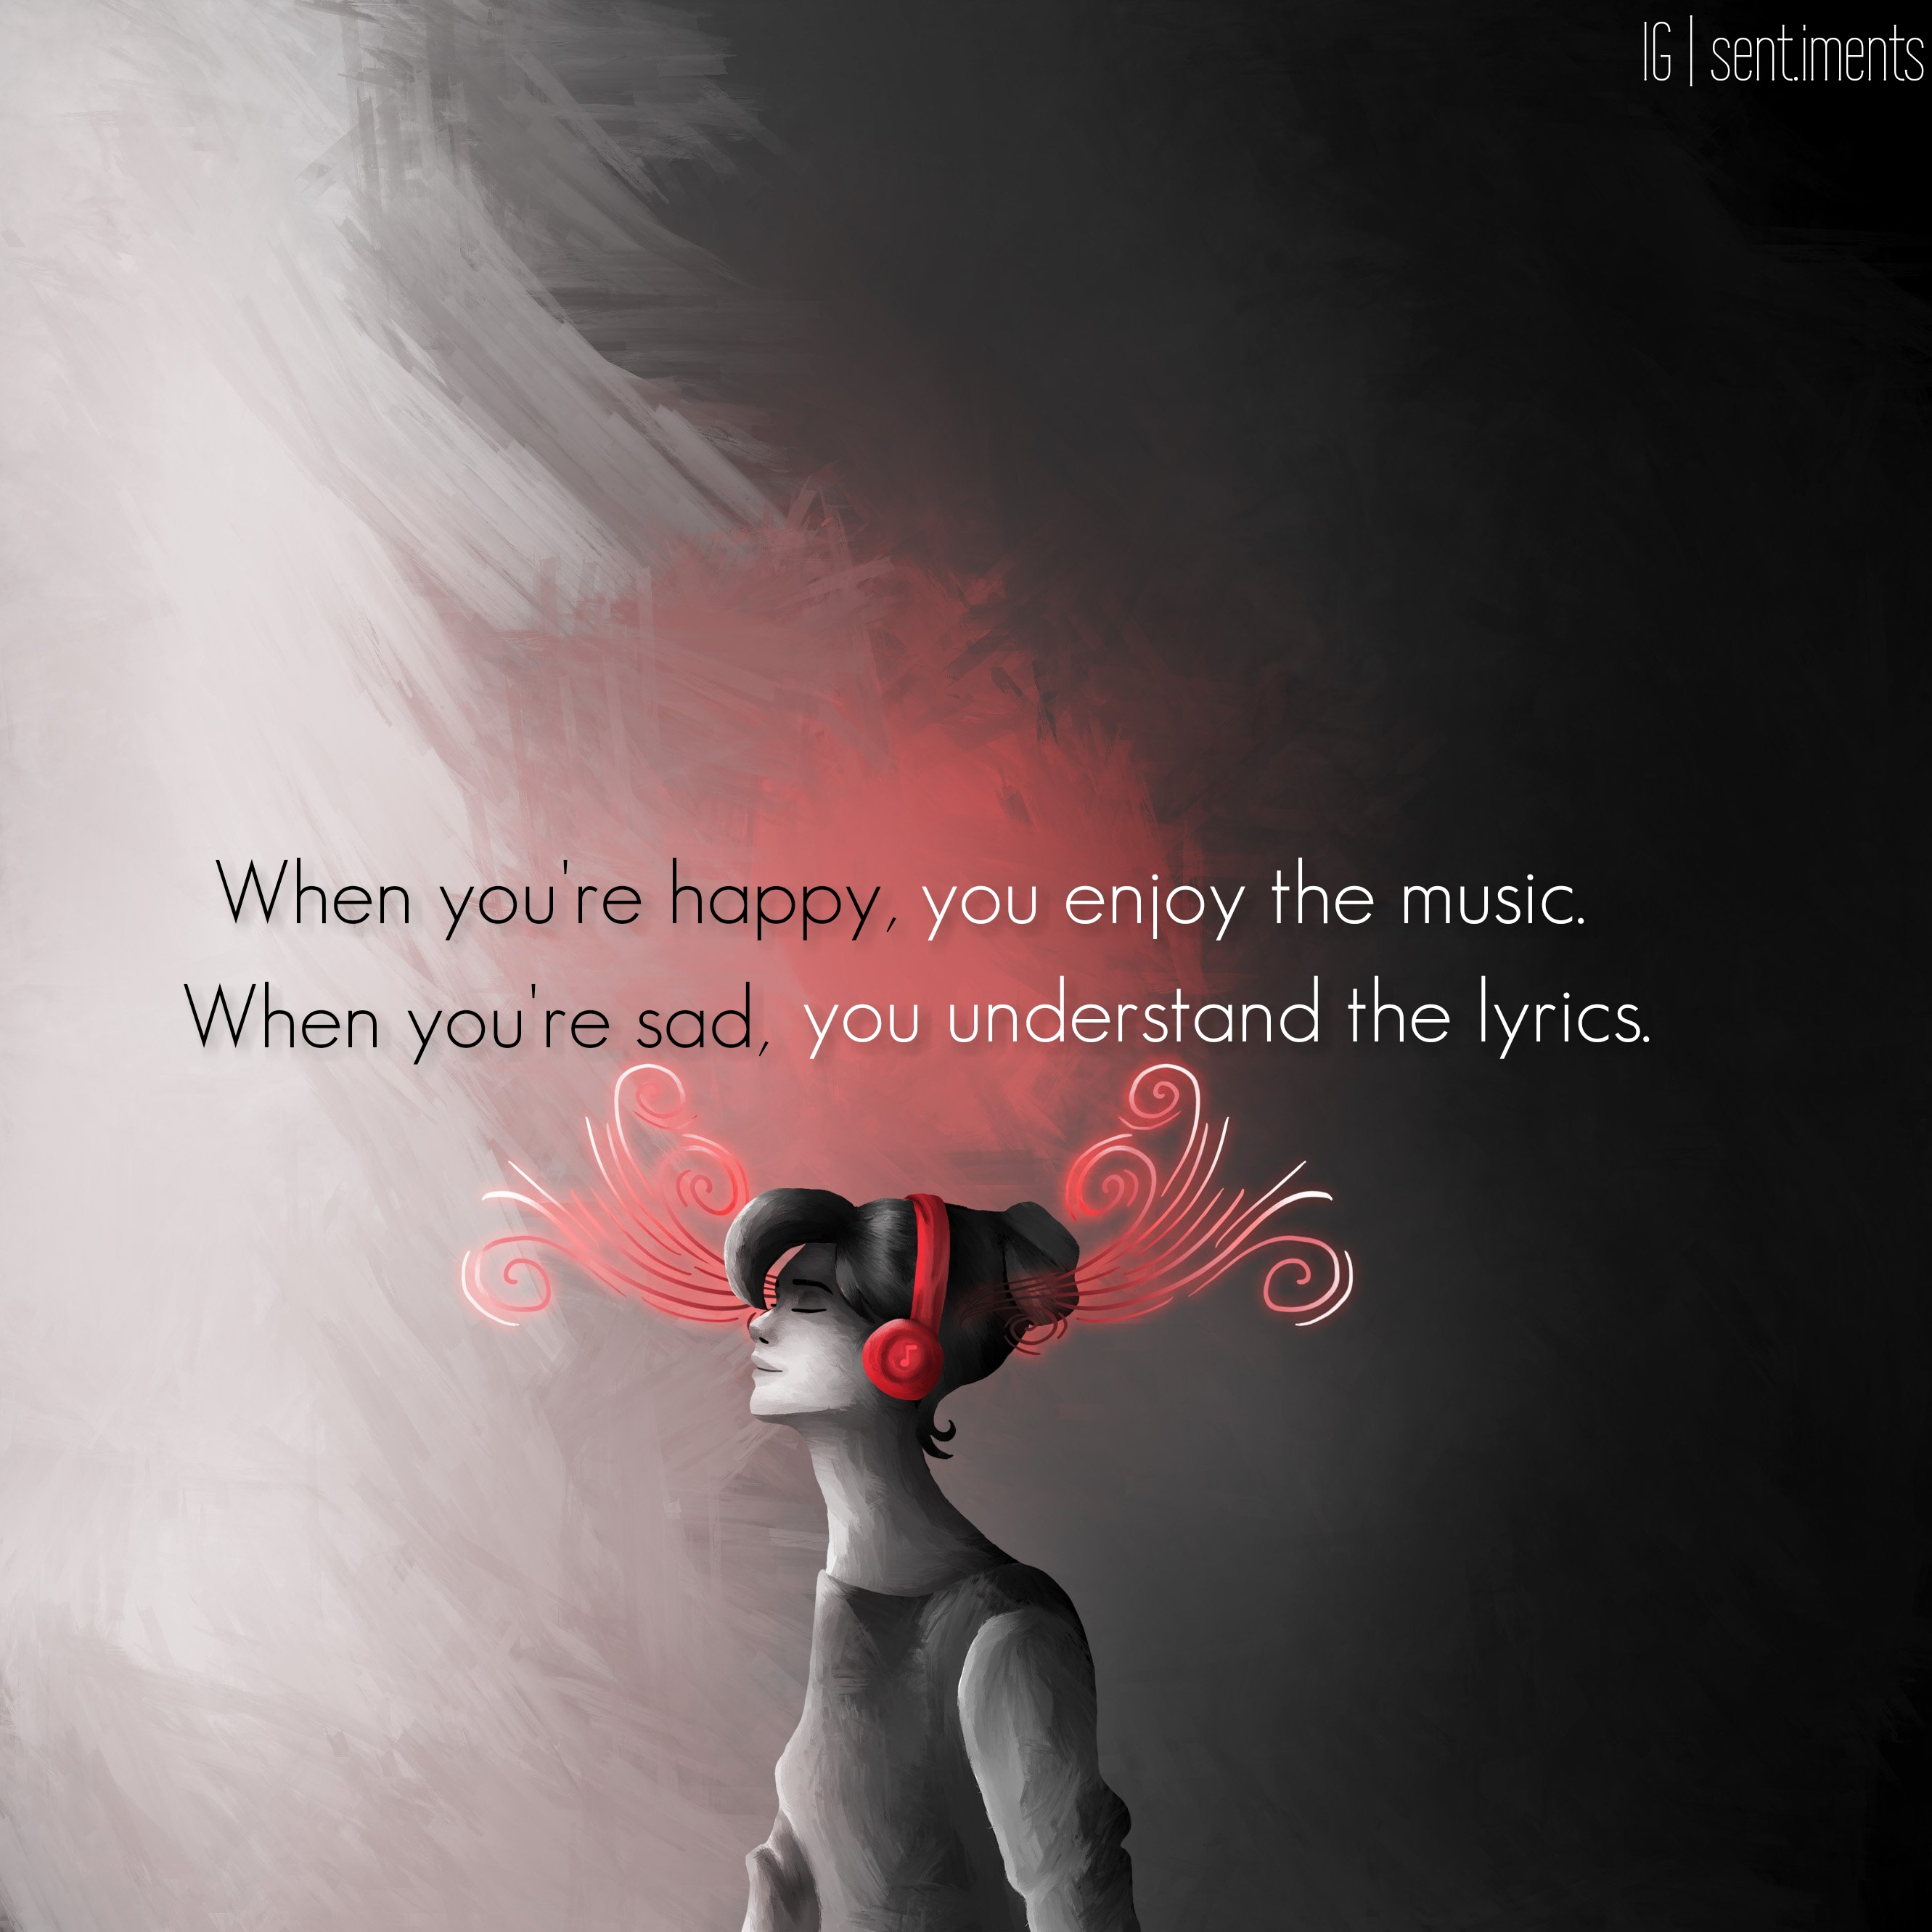 """When you're happy, you enjoy the music. When you're sad, you understand the lyrics."" By Frank Ocean [2662 X 2662]"